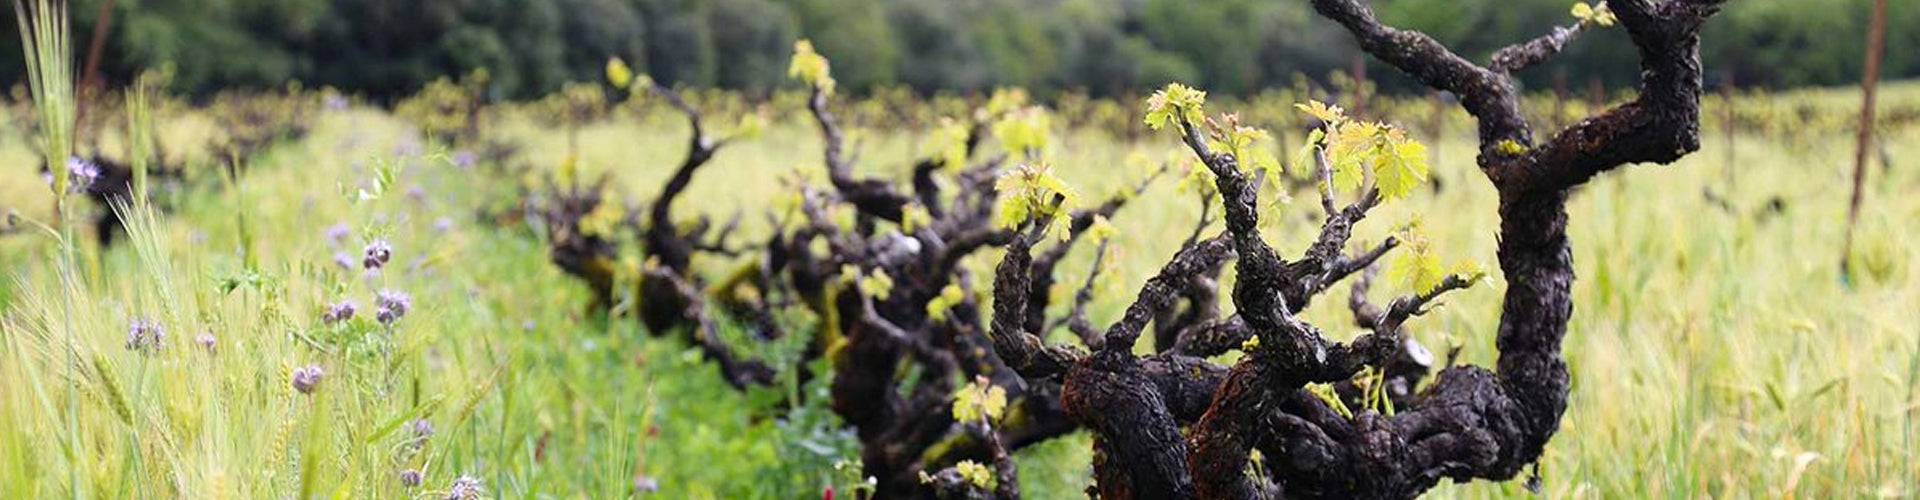 Bedrock Wine Co. vines and cover crops